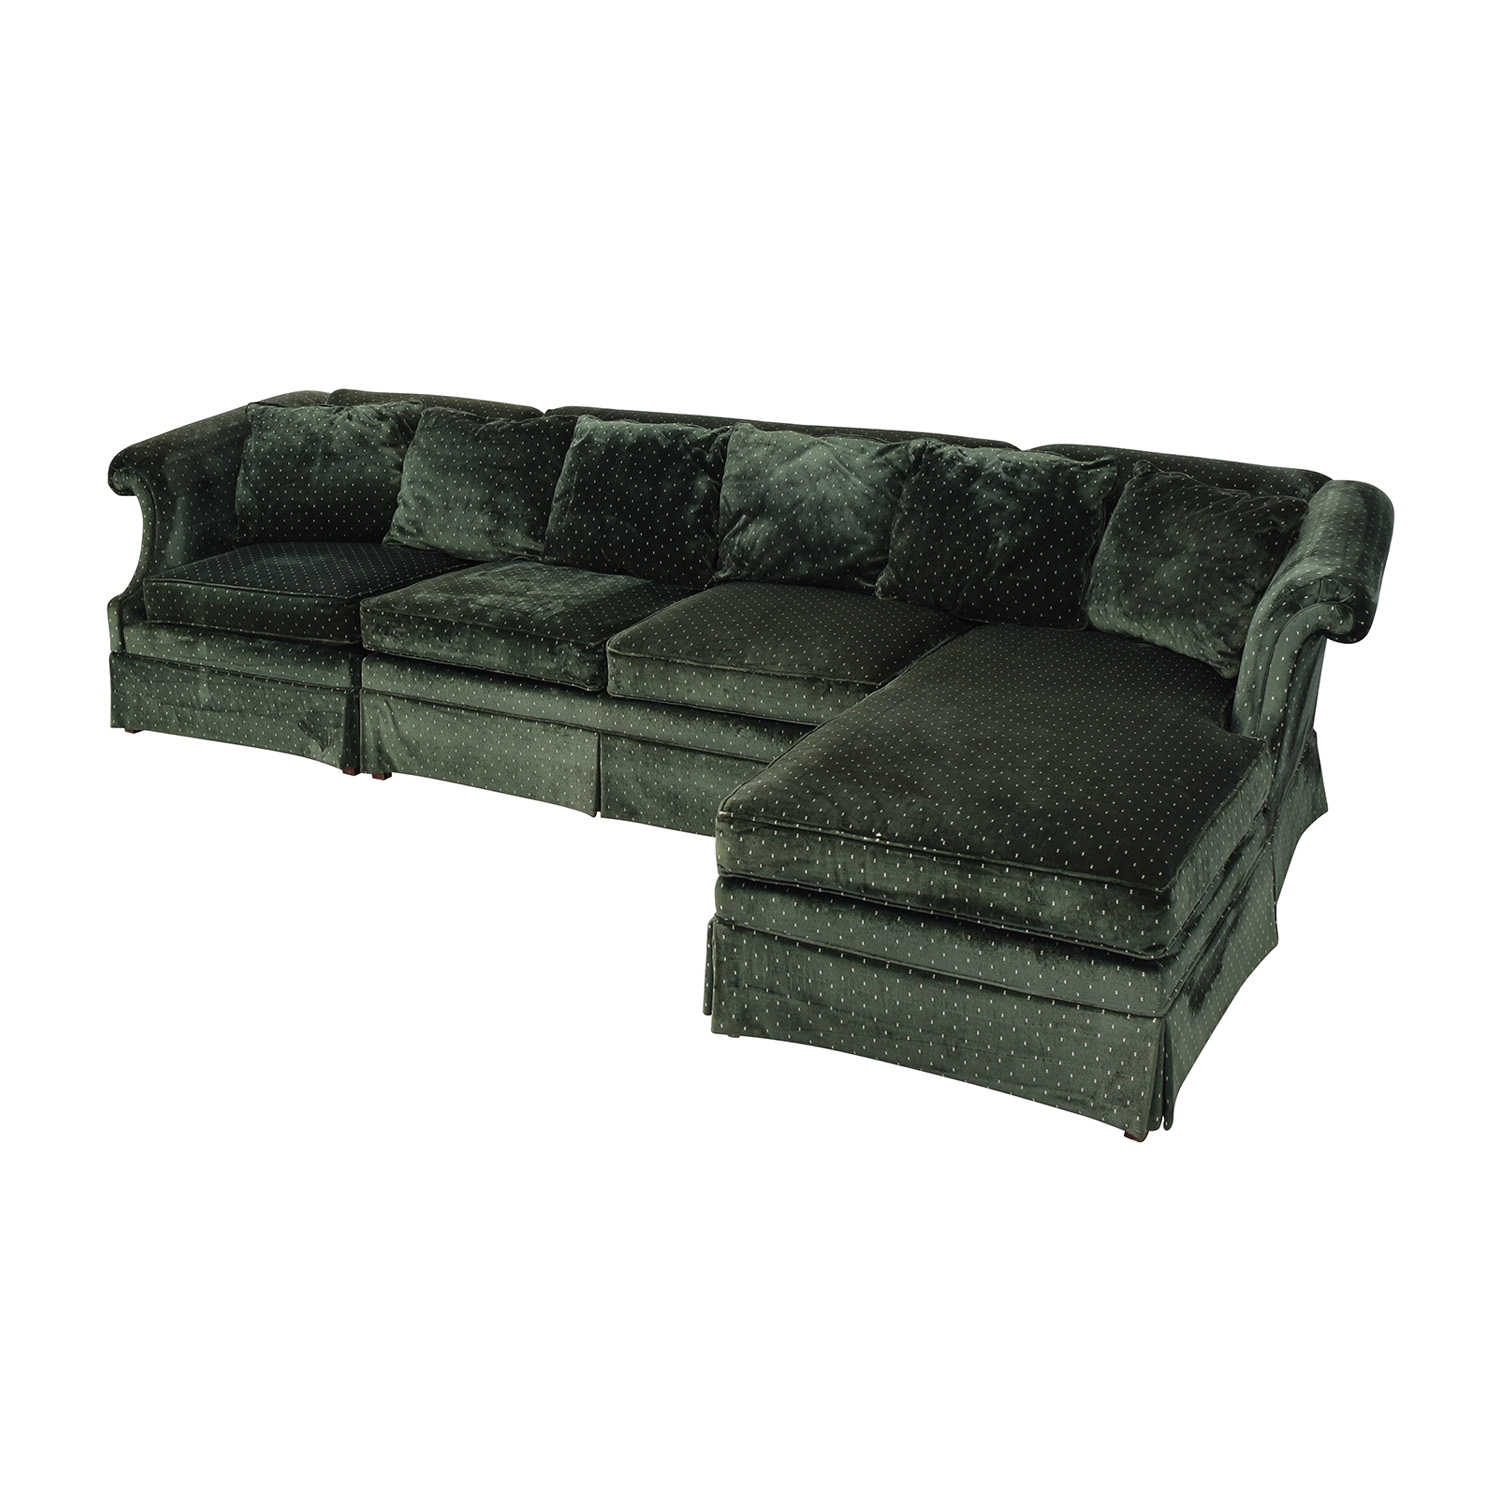 Hickory Tavern Furniture Hickory Tavern Furniture Three Piece Sectional Sofa nj